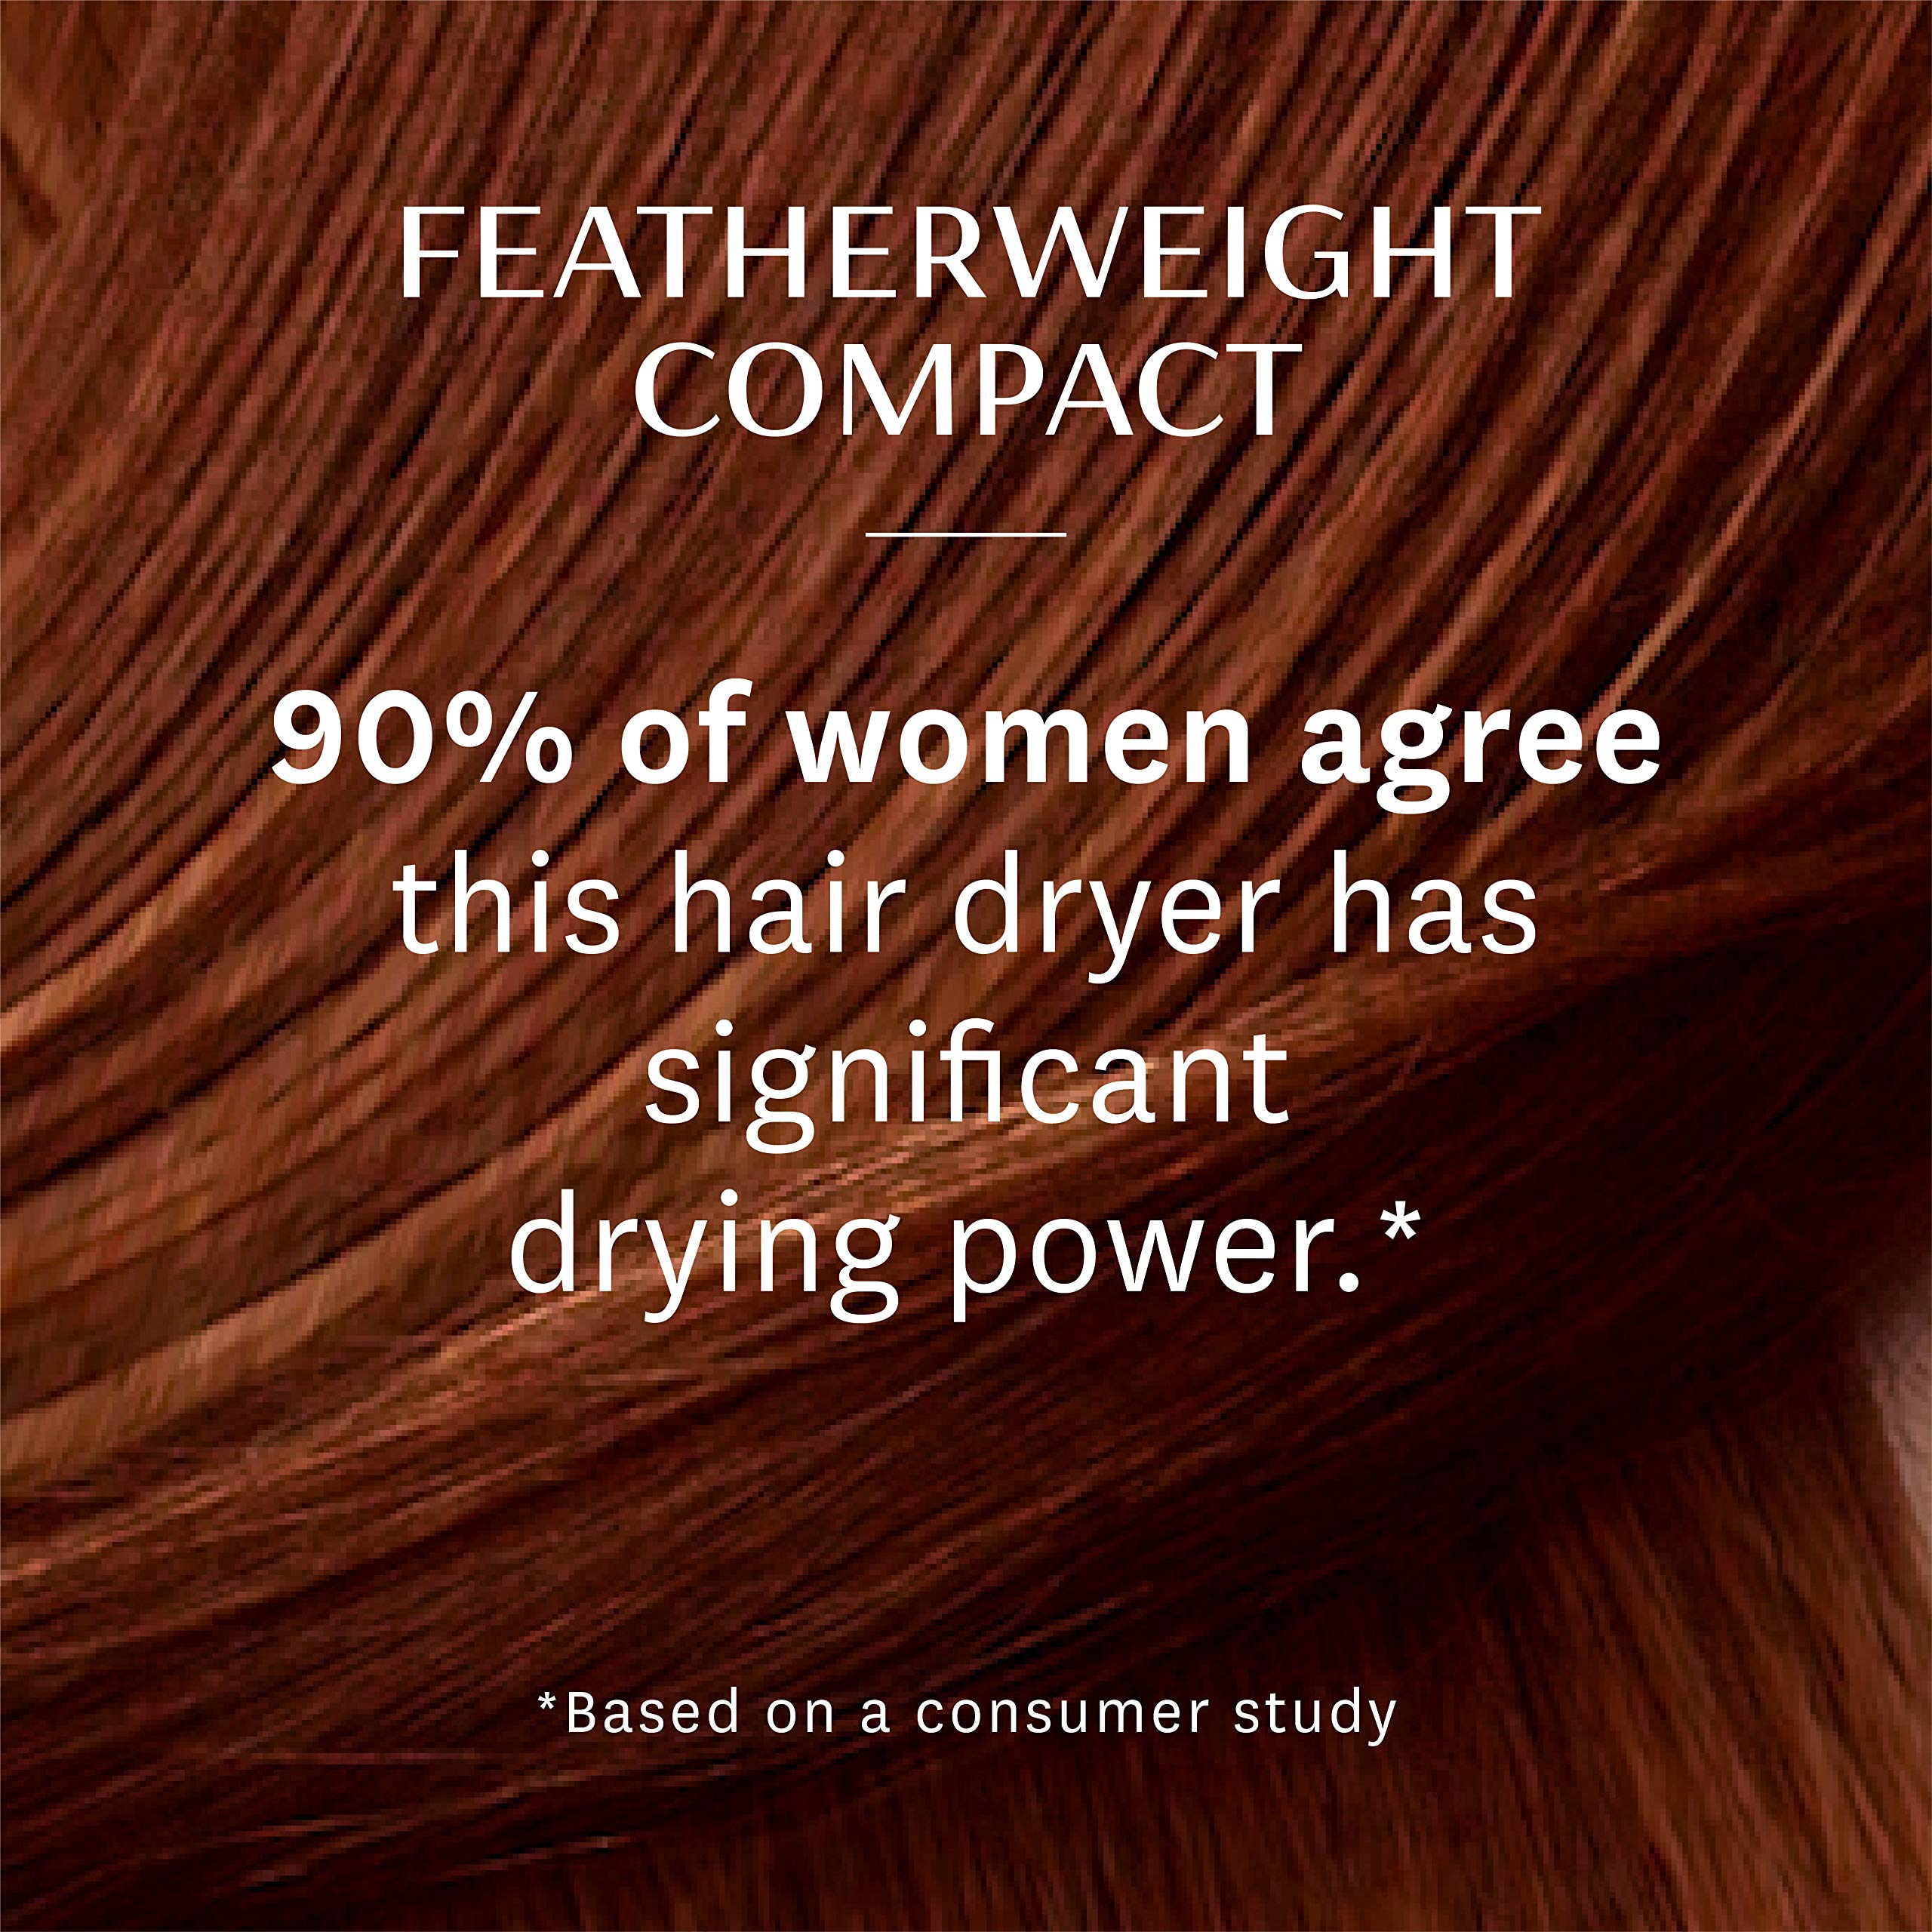 T3 - Featherweight Compact Folding Hair Dryer | Lightweight & Portable Dual Voltage Travel Hair Dryer | T3 SoftAire Technology for Fast, Healthy, and Frizz-Free Blow Drying | Includes Storage Bag by T3 Micro (Image #5)